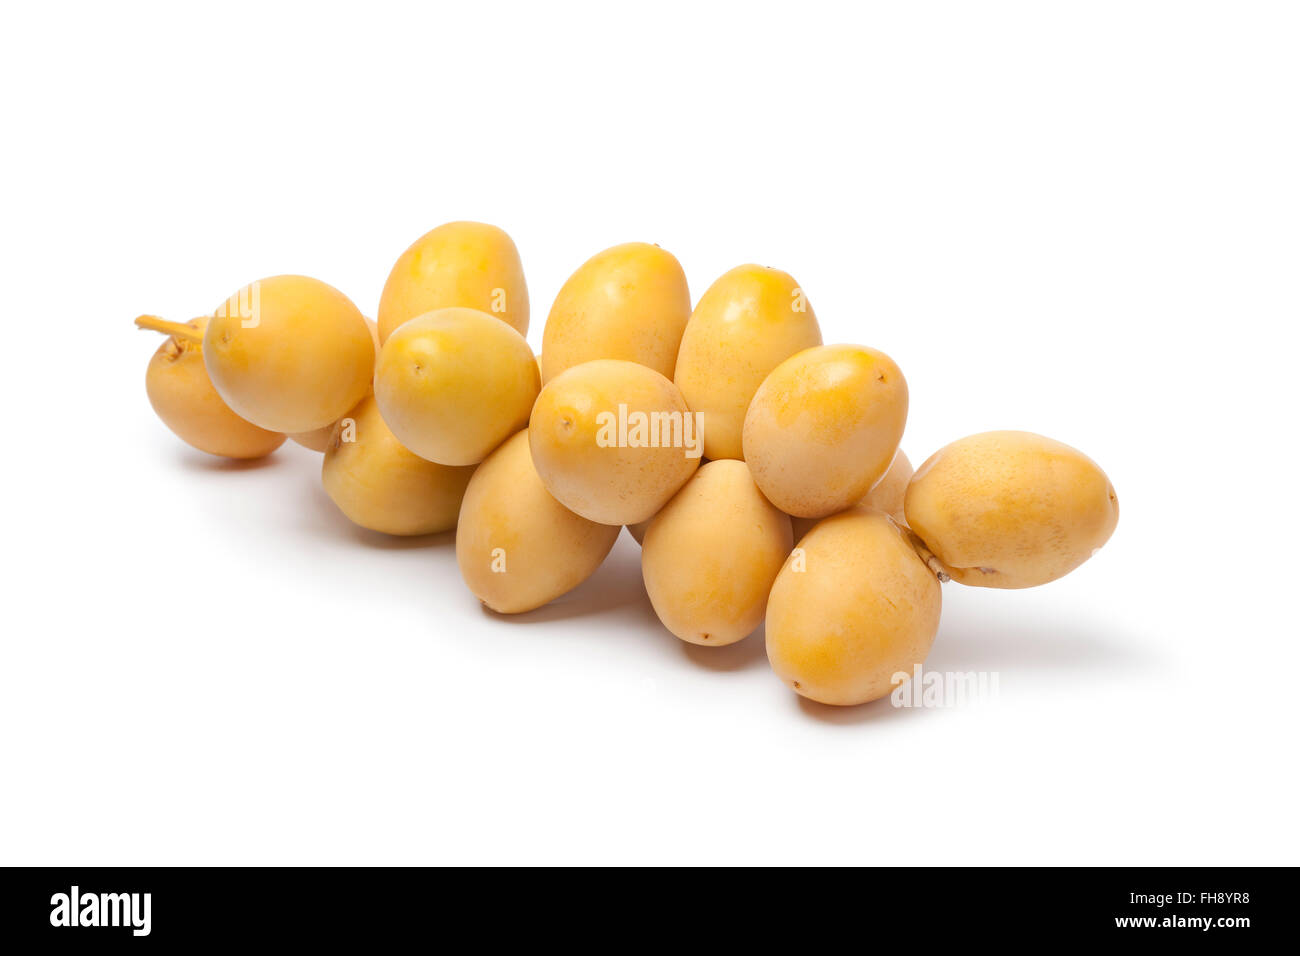 Fresh ripe dates on a sprig on white background - Stock Image